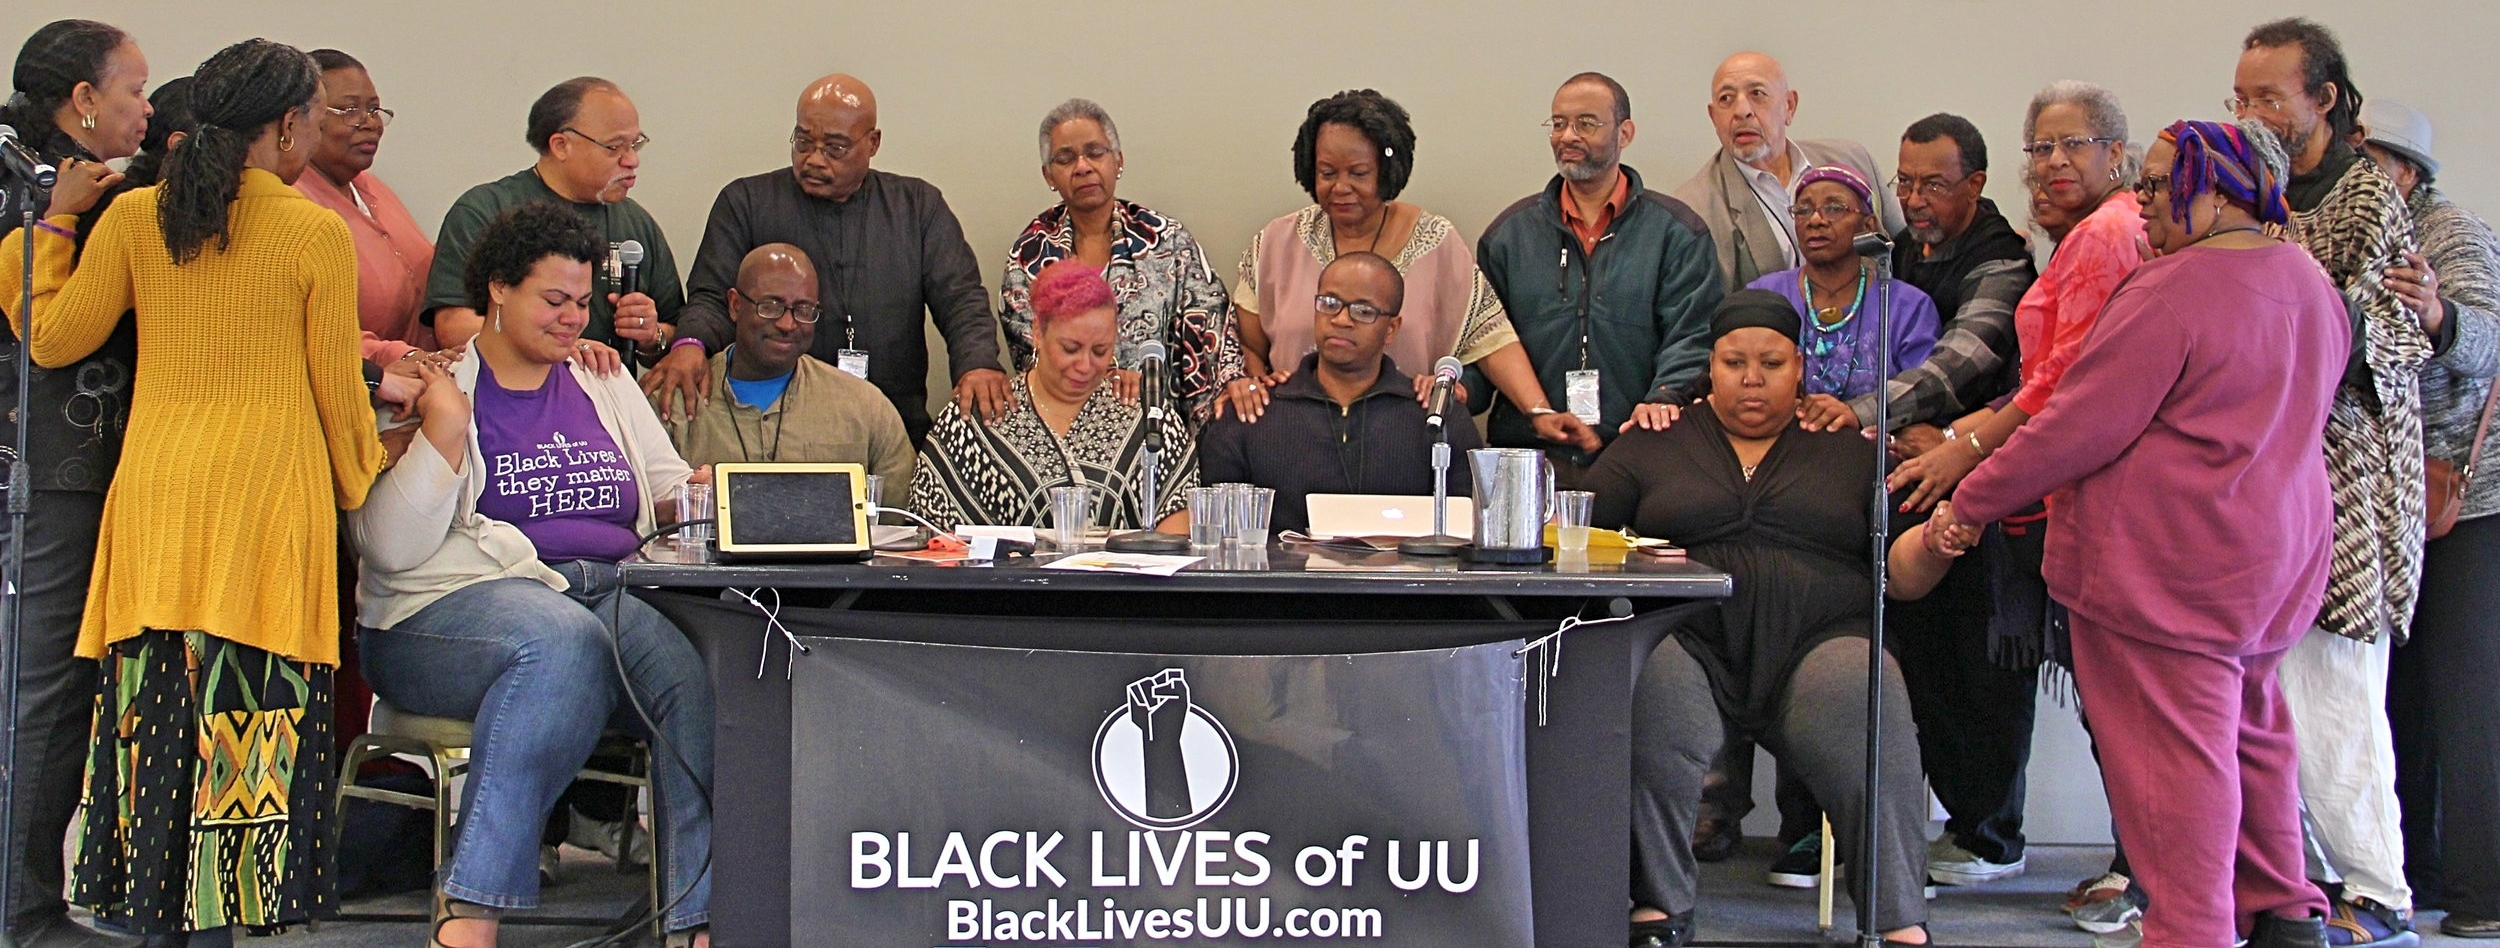 Black UU Elders lay hands and pray over the BLUU Organizing Collective in New Orleans, LA - February 2017